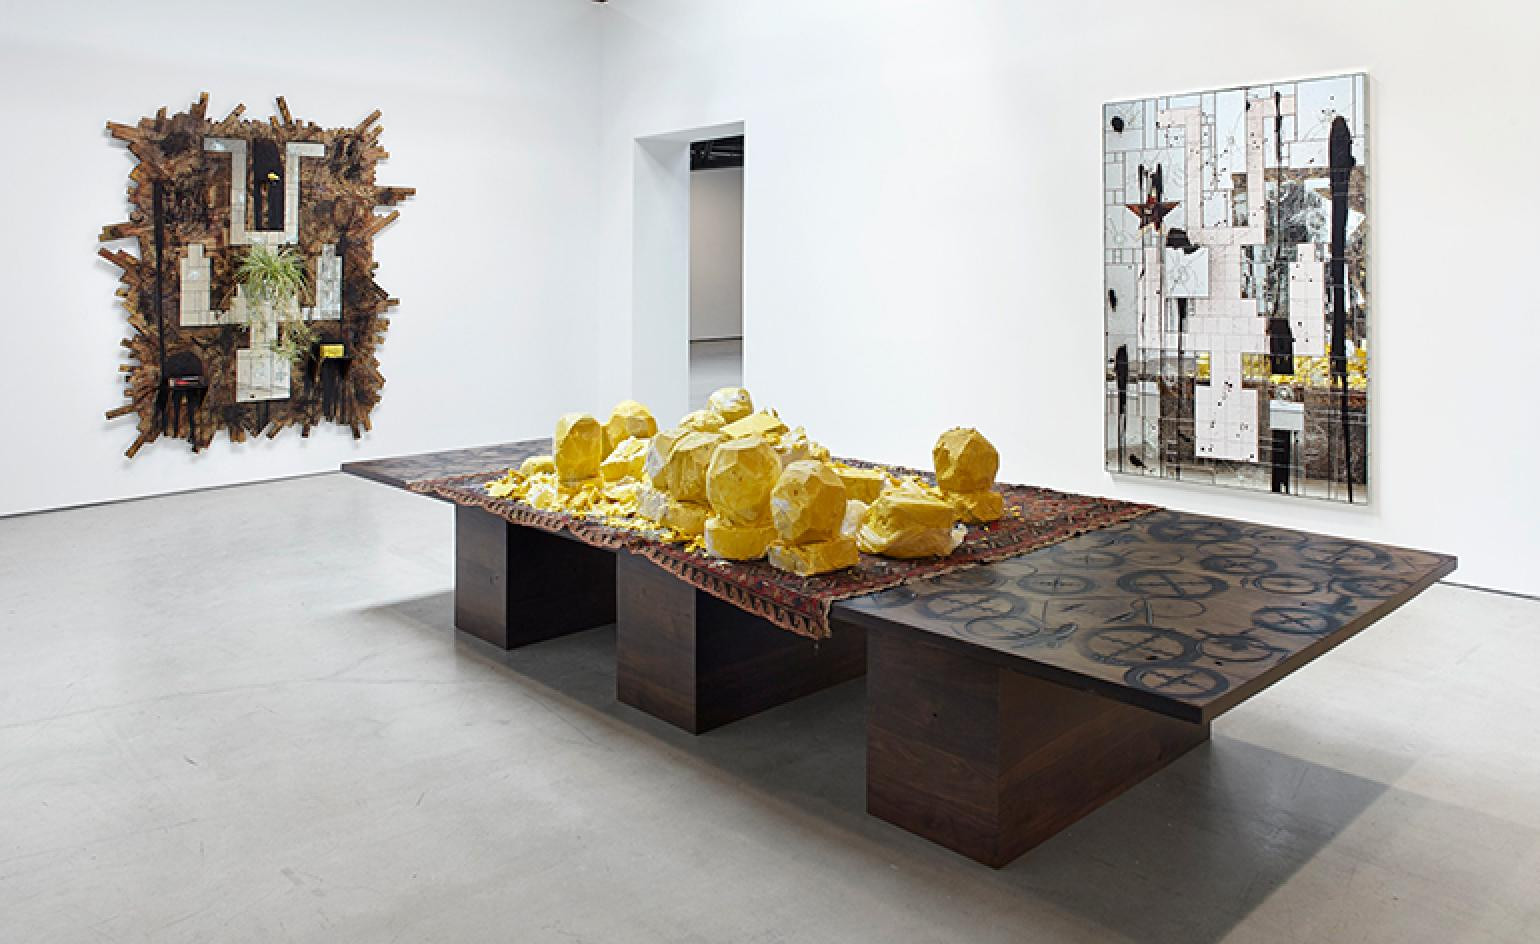 Distinct faces: Rashid Johnson explores escapism and identity in 'Fly Away', at Hauser & Wirth